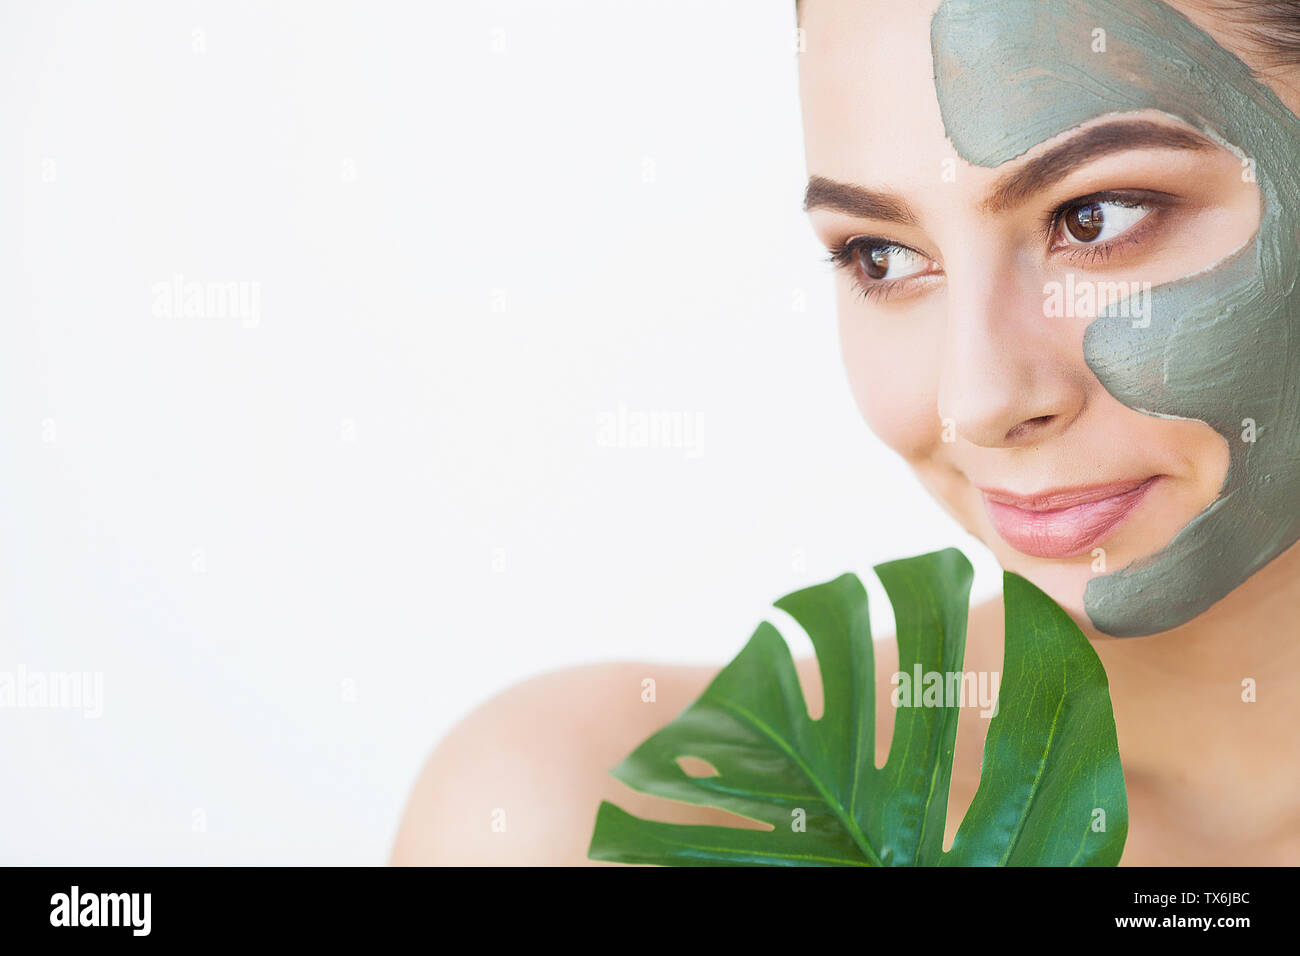 Beauty Face Skin Care Woman With Cosmetic Spa Facial Mask Stock Photo Alamy